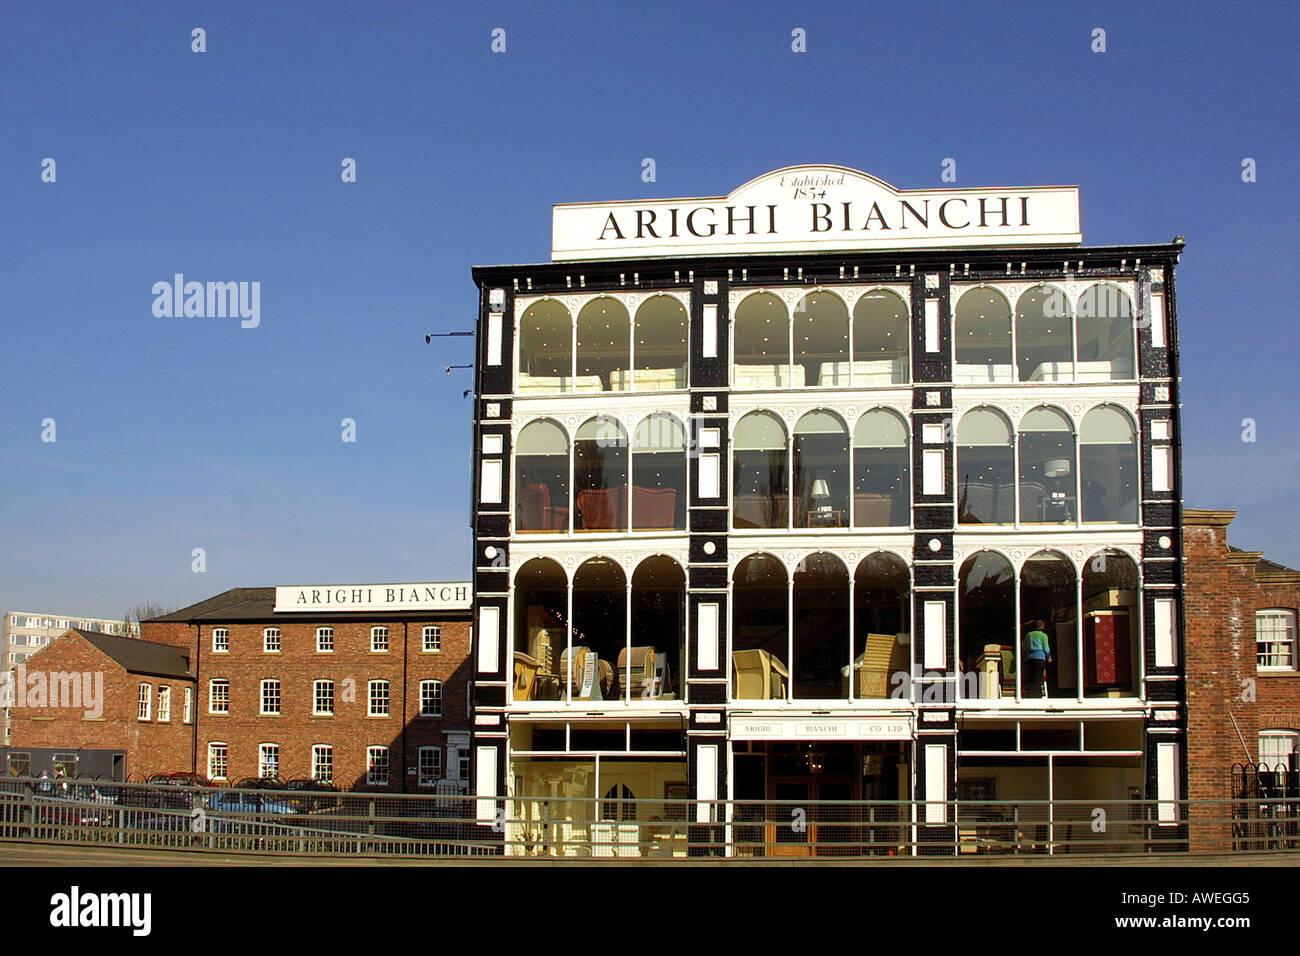 England Cheshire Macclesfield Arighi Bianchi Victorian shop - Stock Image